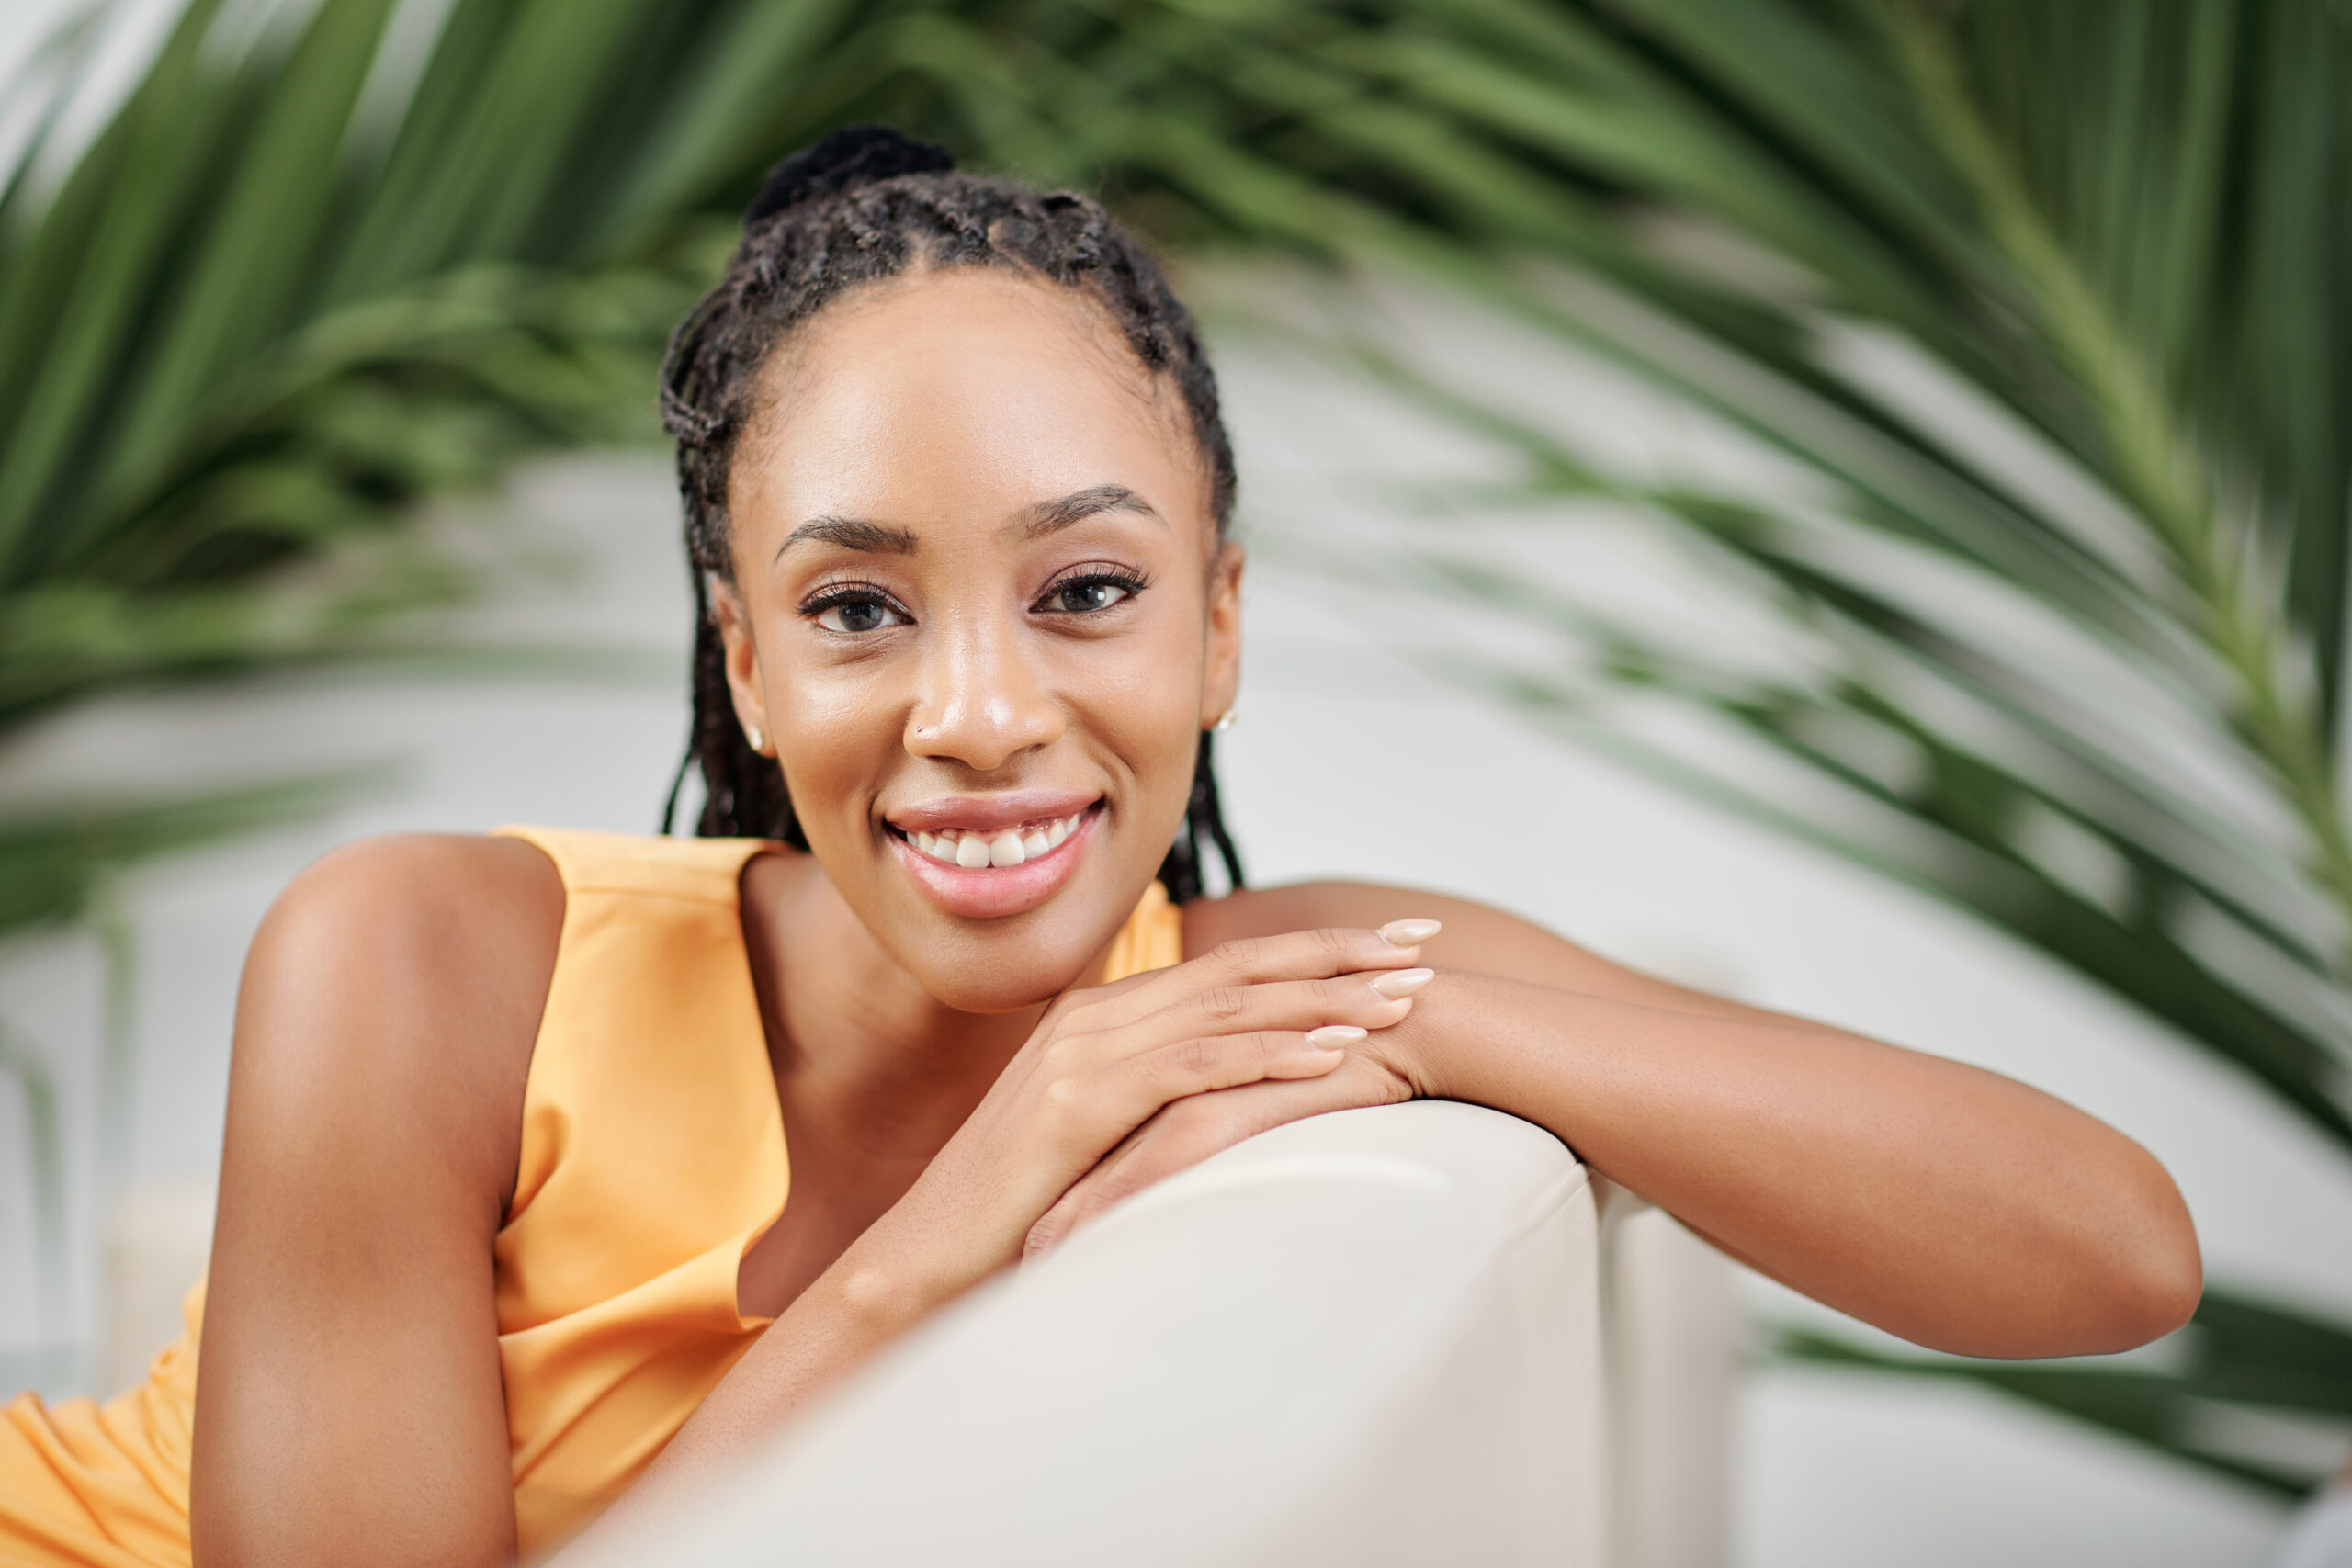 Pretty young Black woman sitting on armchair with palm leaves behid and smiling at camera